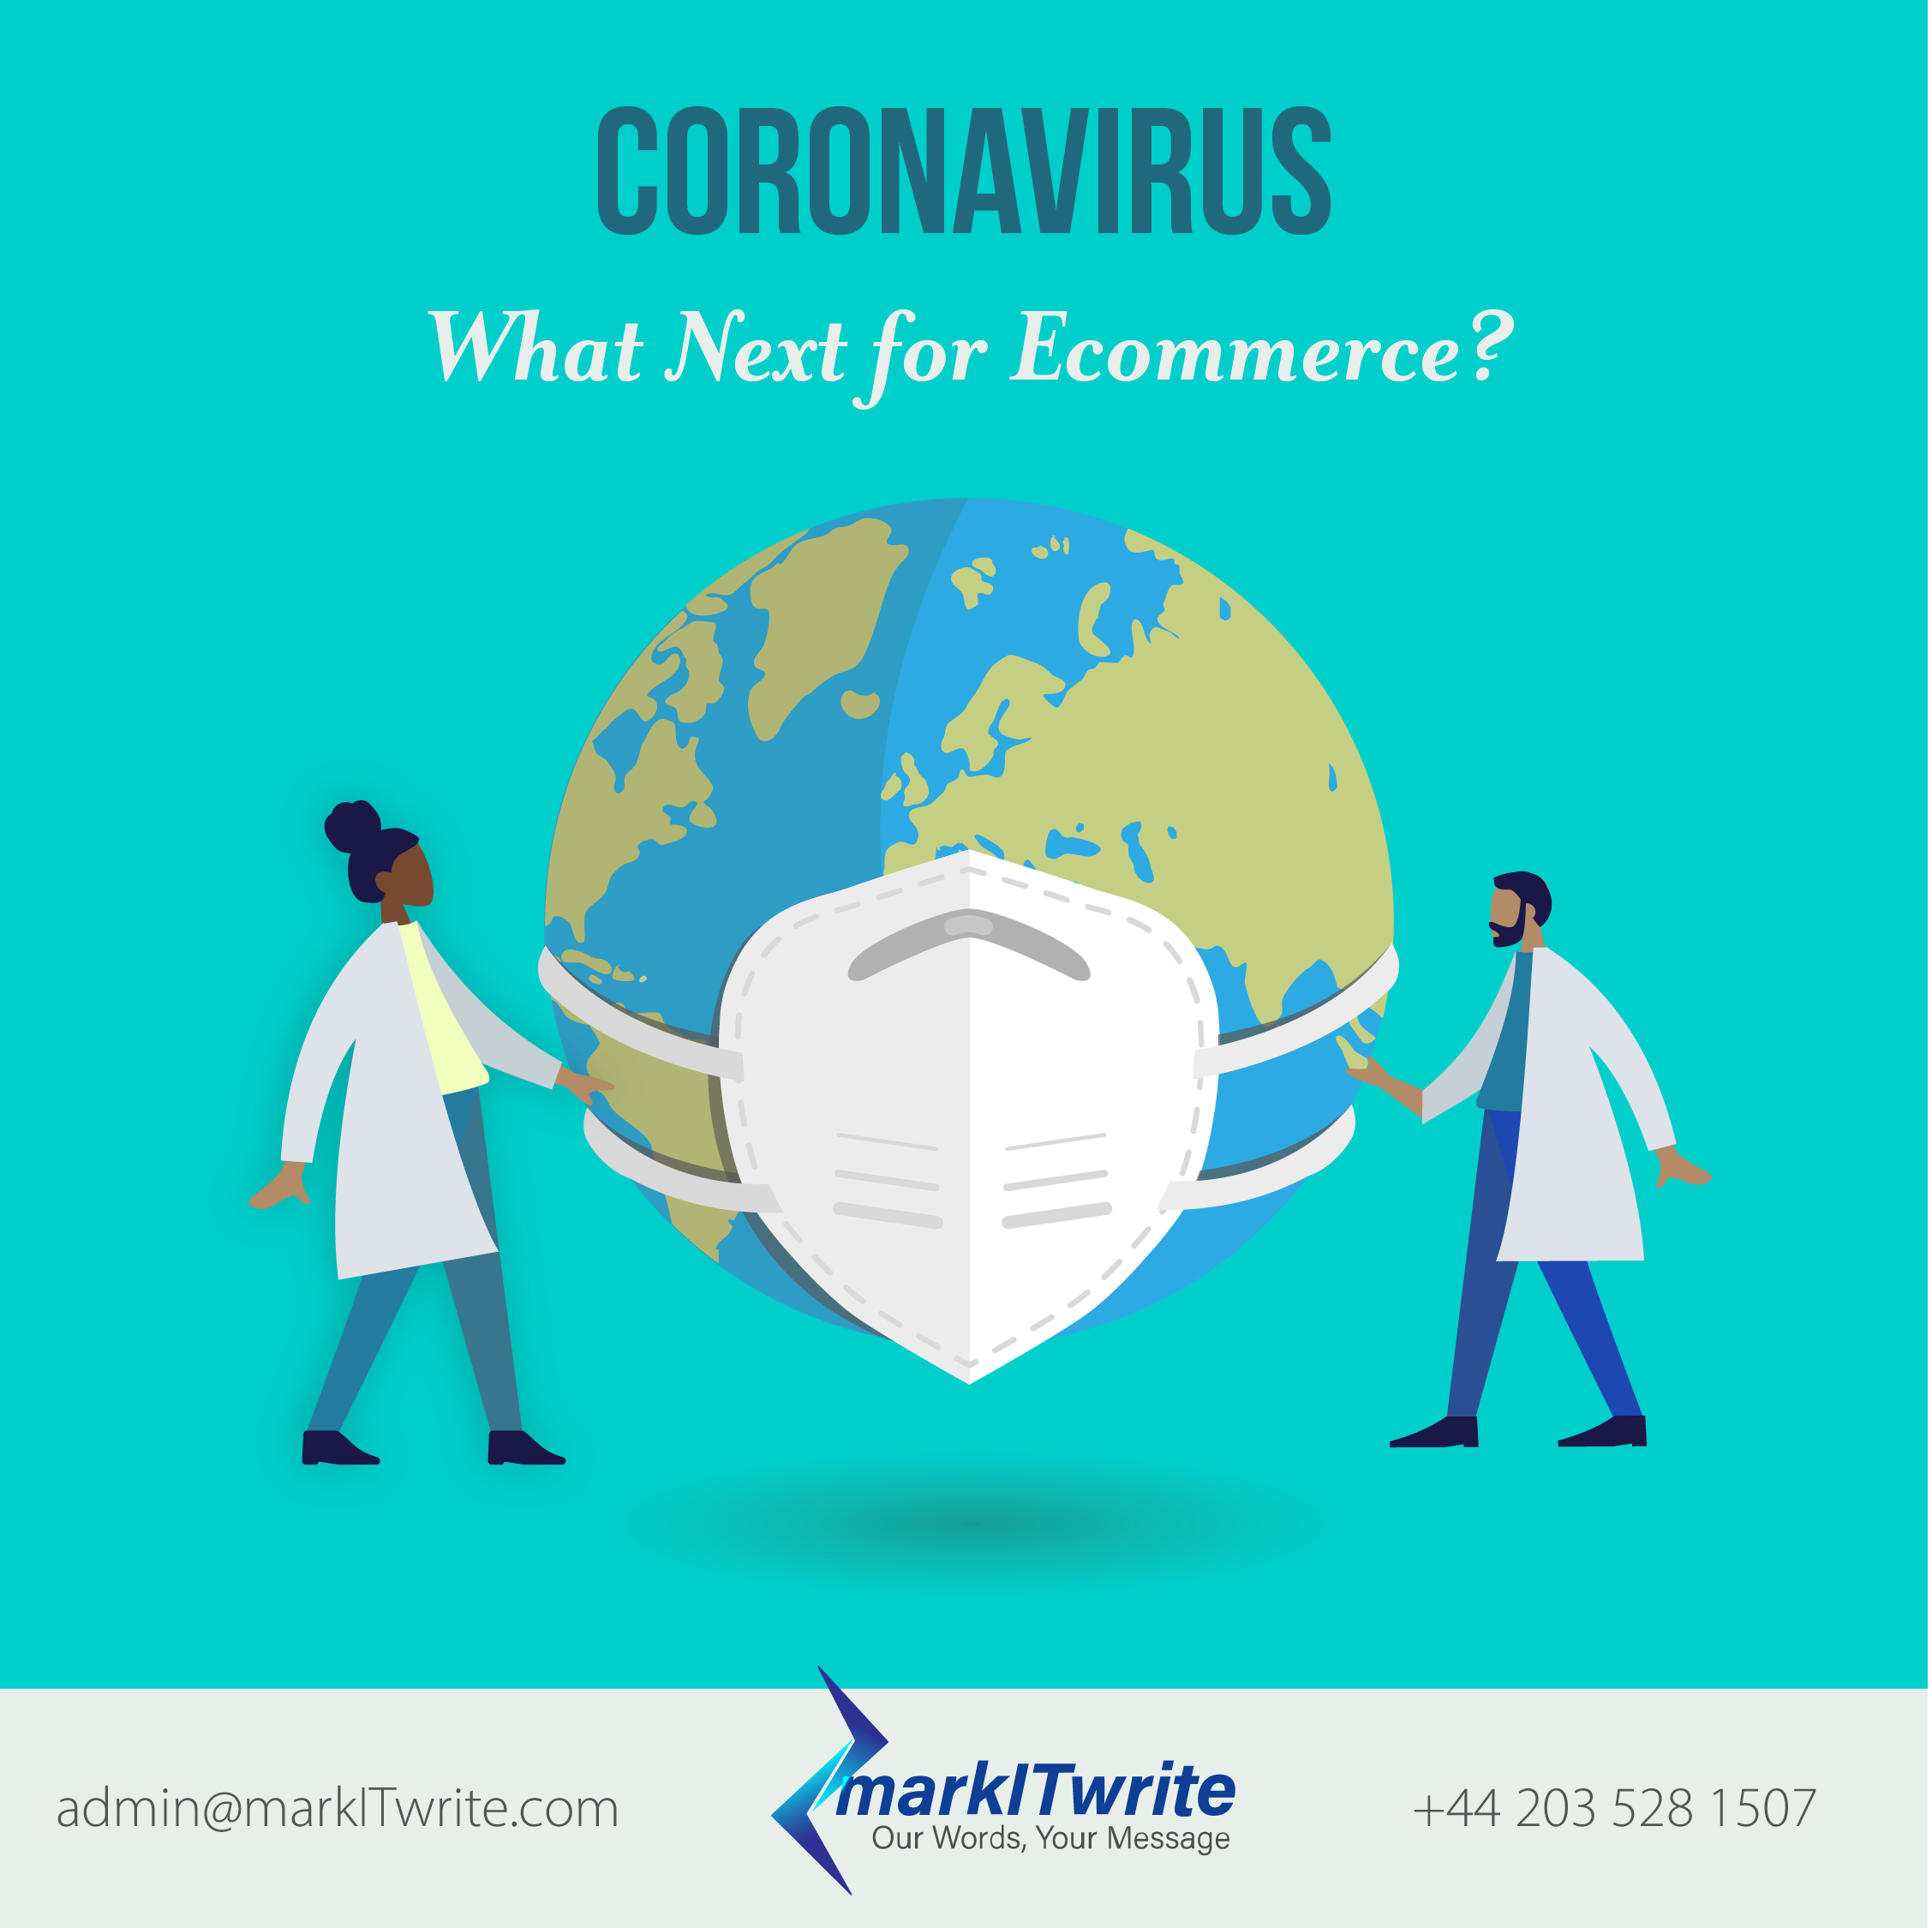 Coronavirus - What Next for Ecommerce?